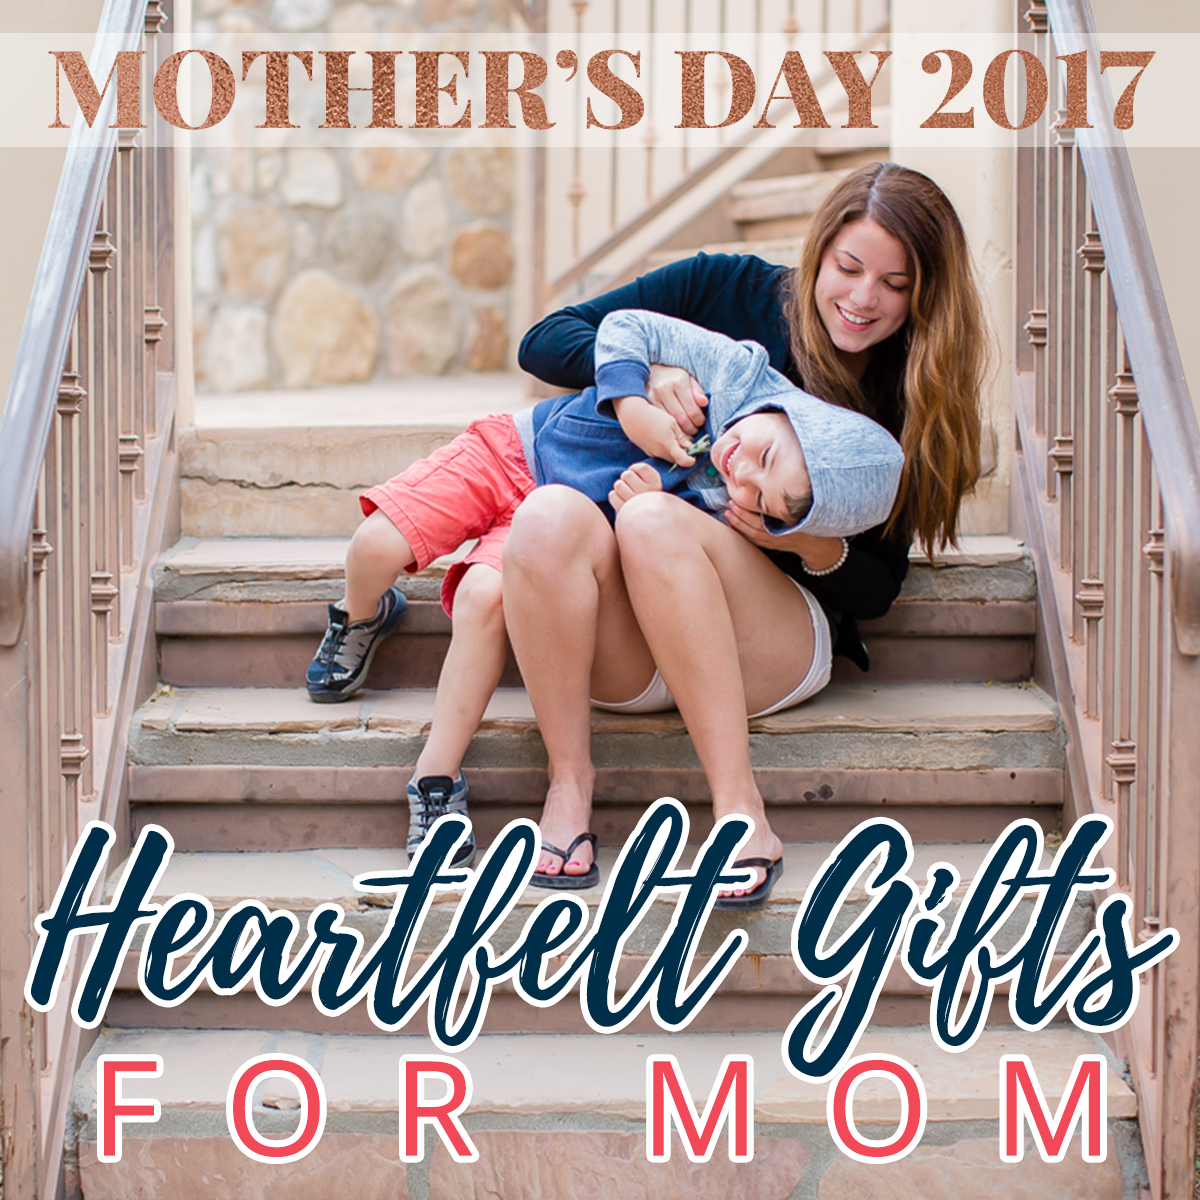 mother 39 s day 2017 heartfelt gifts for mom daily mom. Black Bedroom Furniture Sets. Home Design Ideas